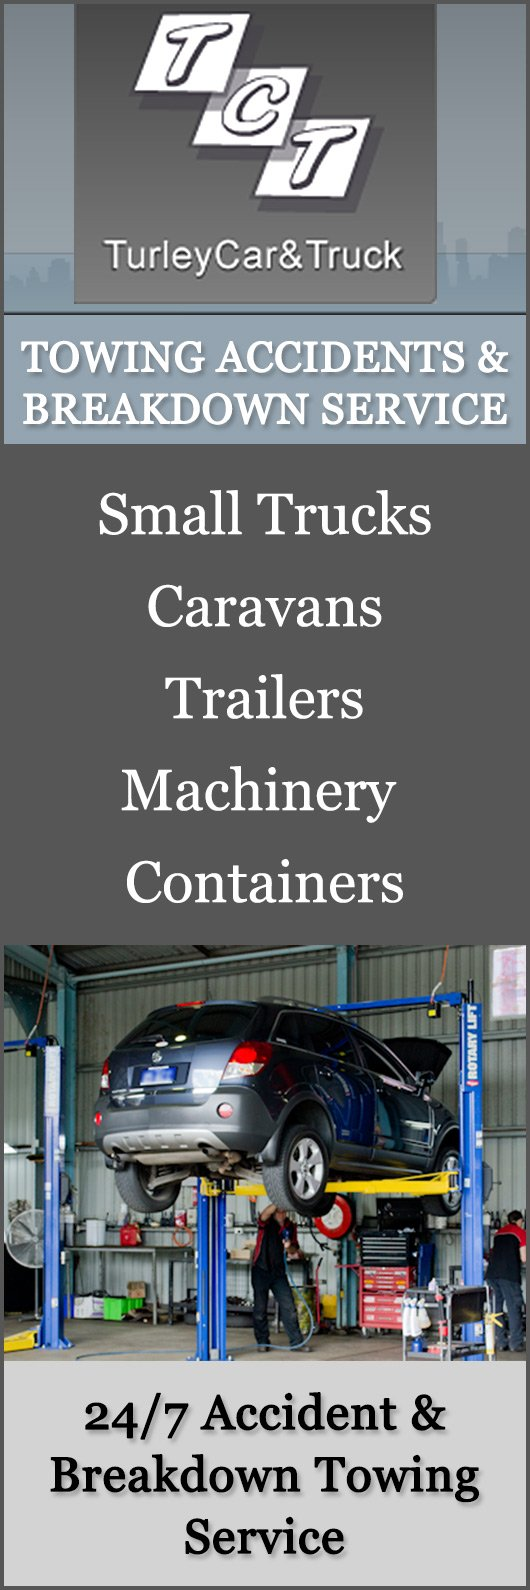 Turley Car & Truck - Towing Services - 11 Turley St - Ipswich